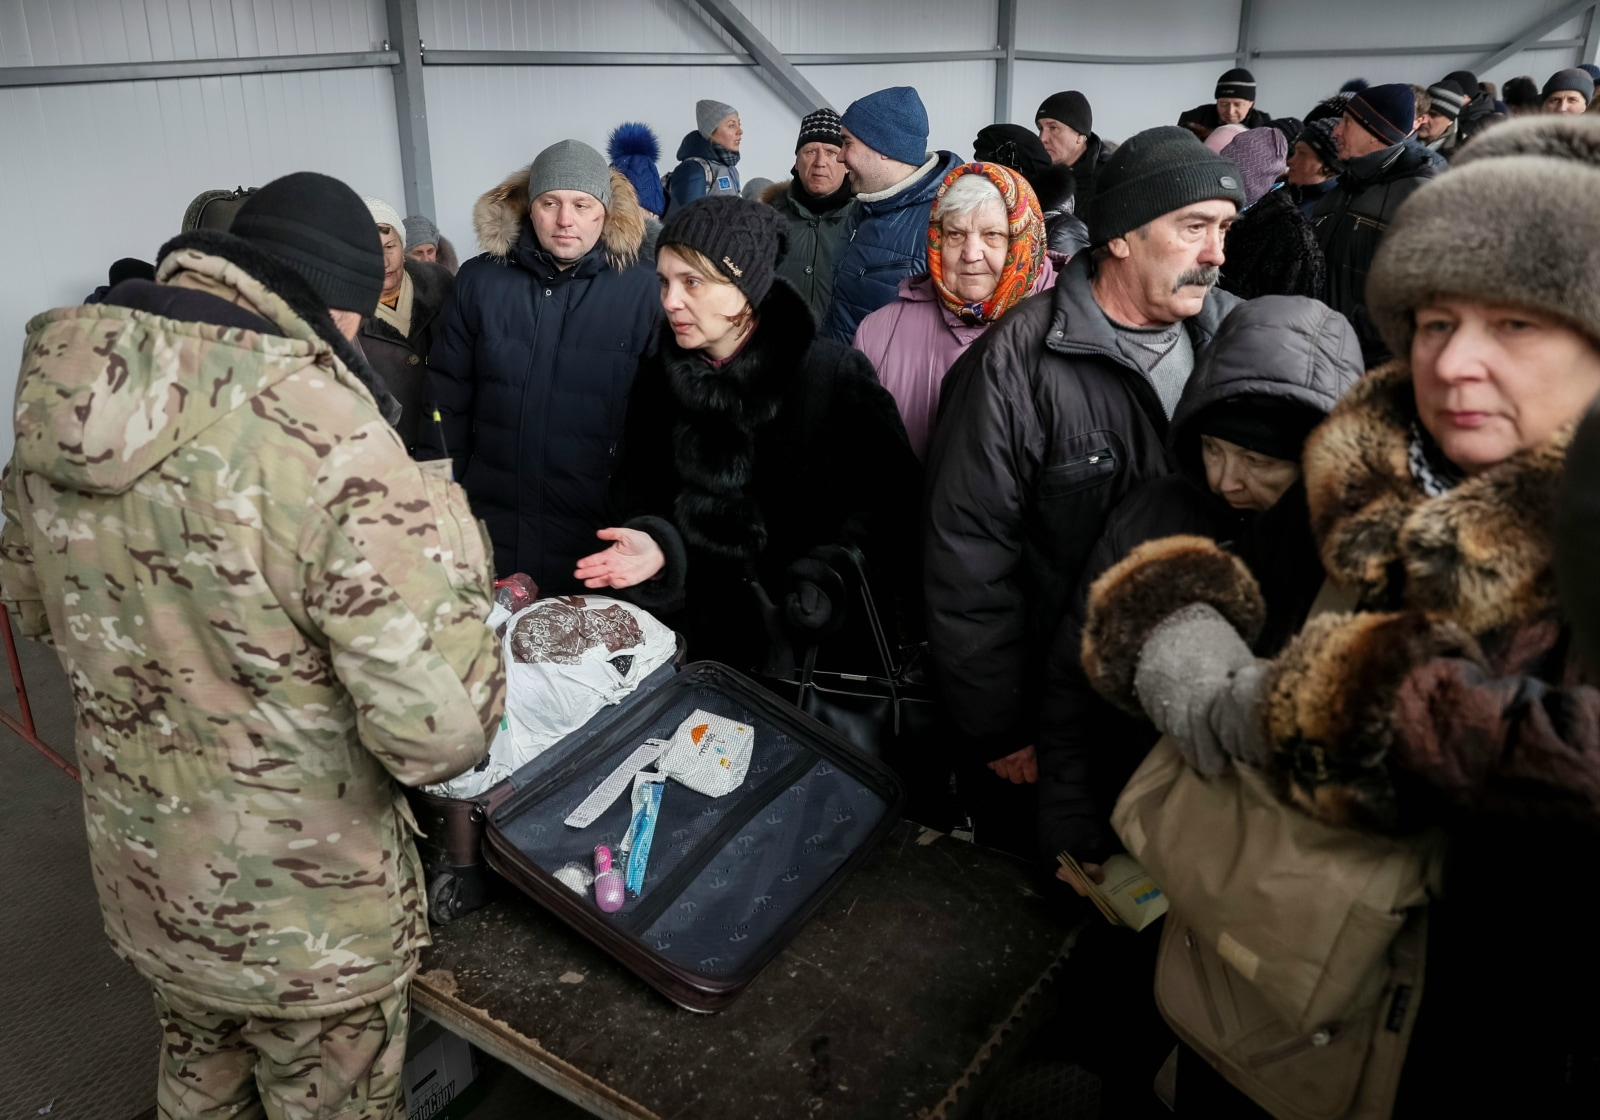 People line up as border guards check their luggage before they go through passport control, after crossing the contact line between pro-Russian rebels and Ukrainian troops in Mayorsk, Ukraine, February 25, 2019. More than a million people cross the 500 km contact line every year, many of them are pensioners who spend hours queuing, in cold, heat, rain or snow, as they rely on state benefits that can only be obtained on the government-controlled side. REUTERS/Gleb Garanich